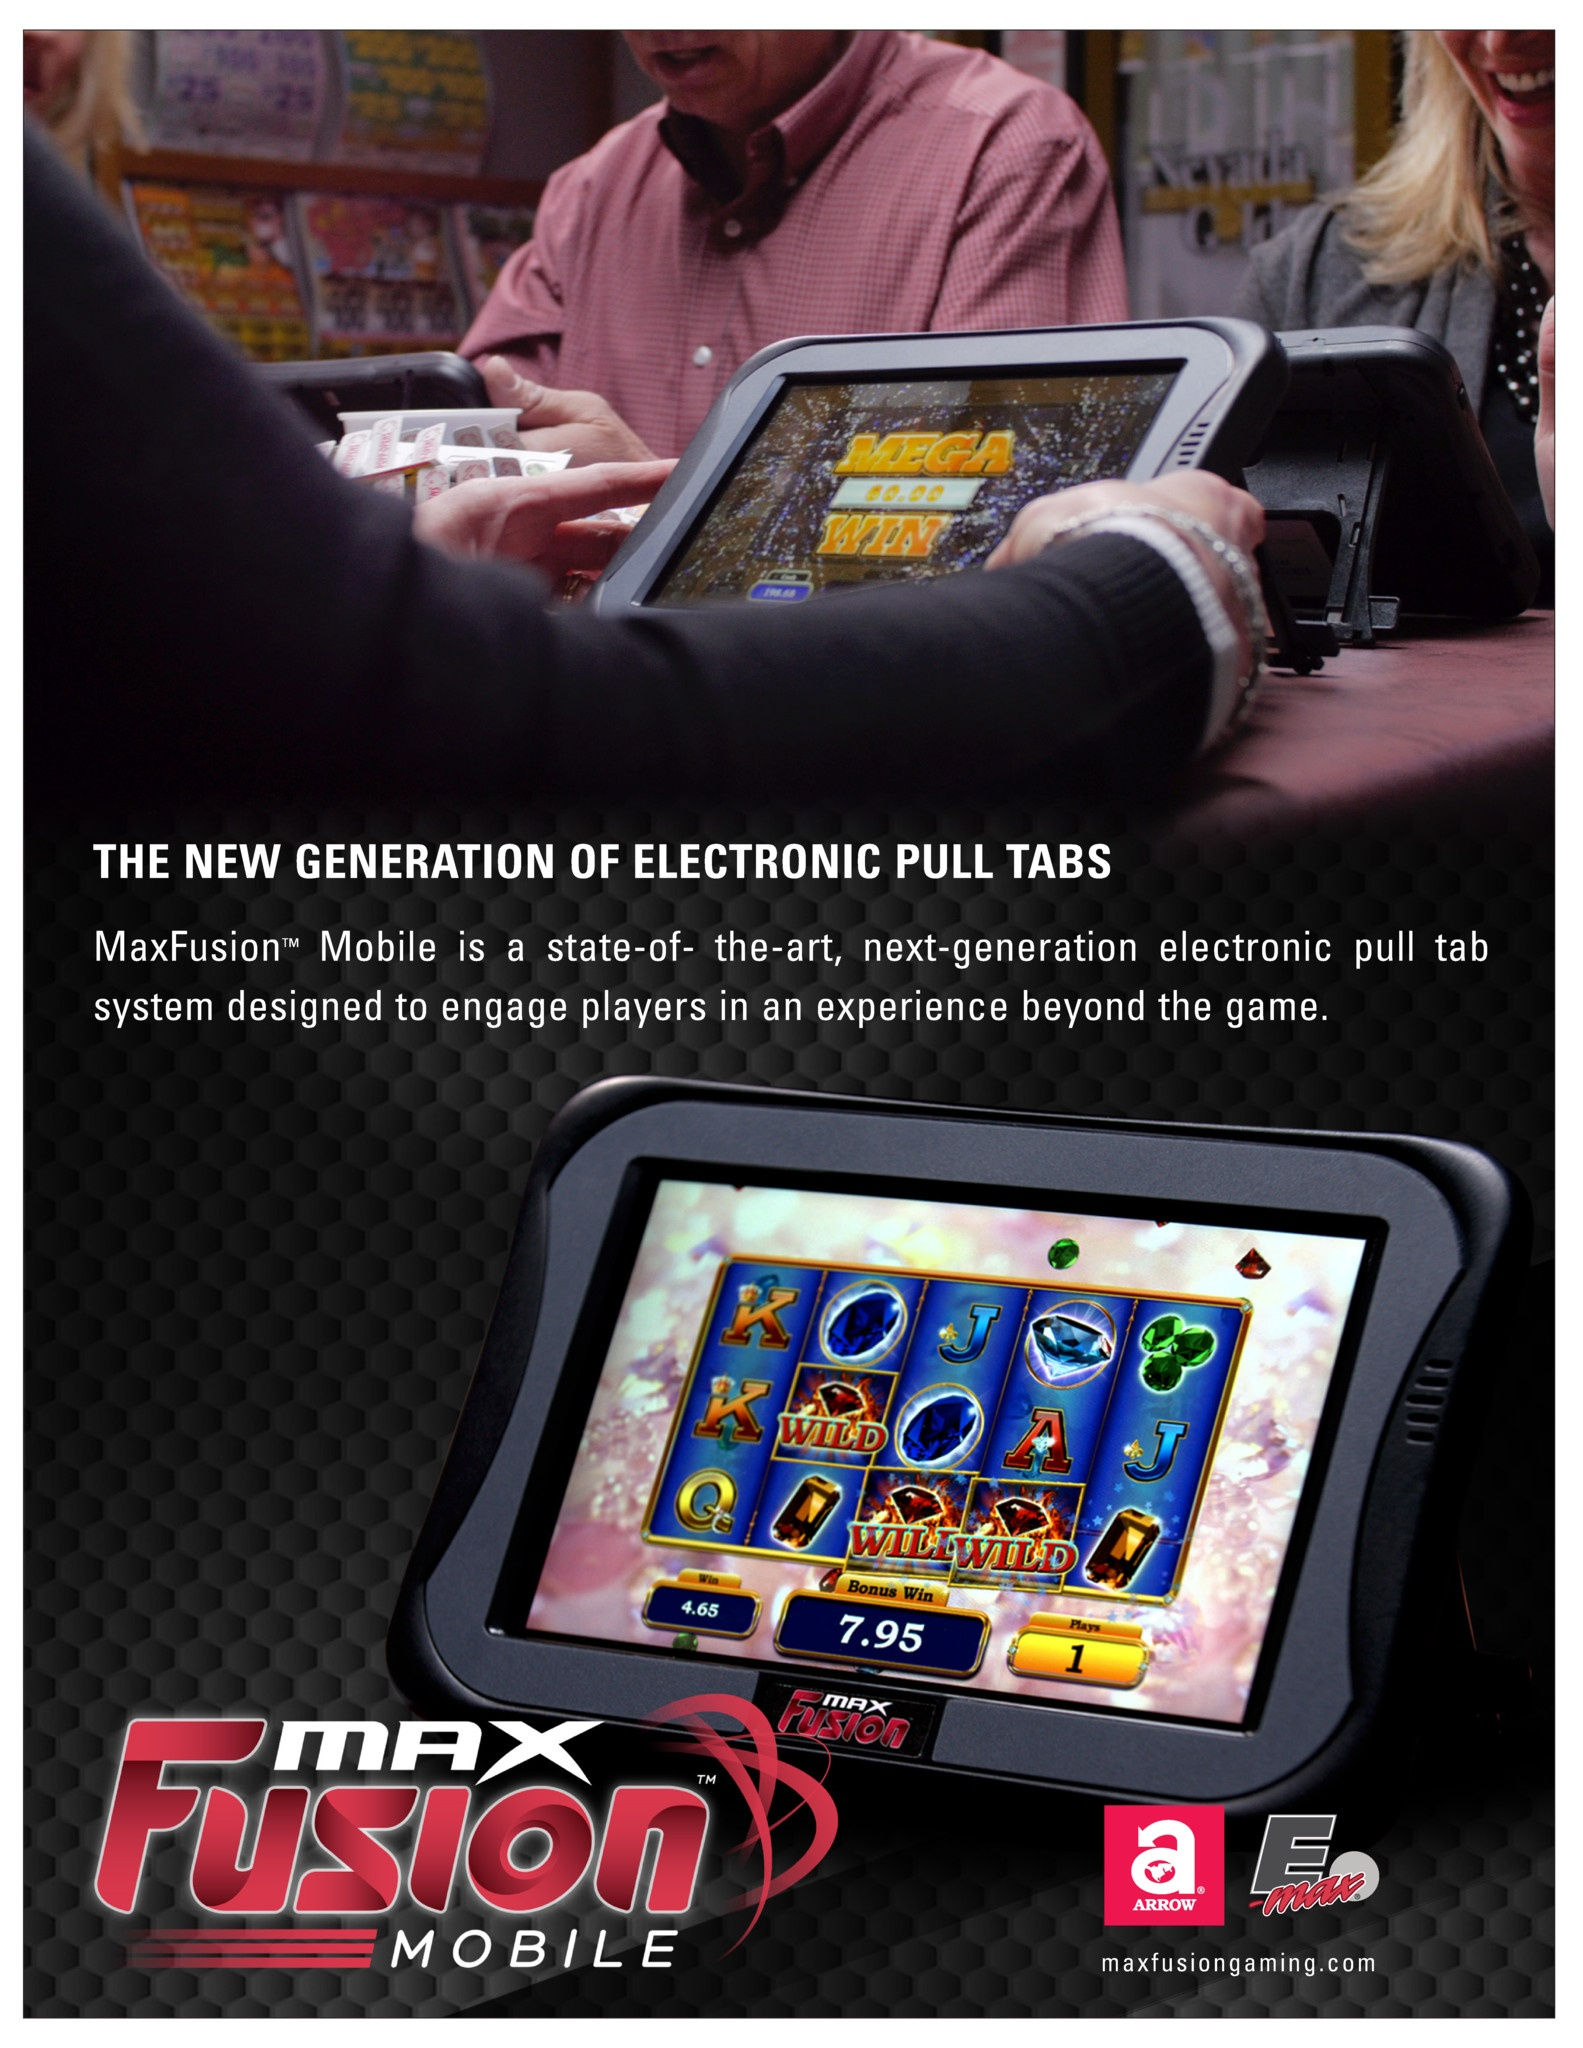 MaxFusion Mobile Flyer Promotional Materials/Equipment Flyers & Brochures